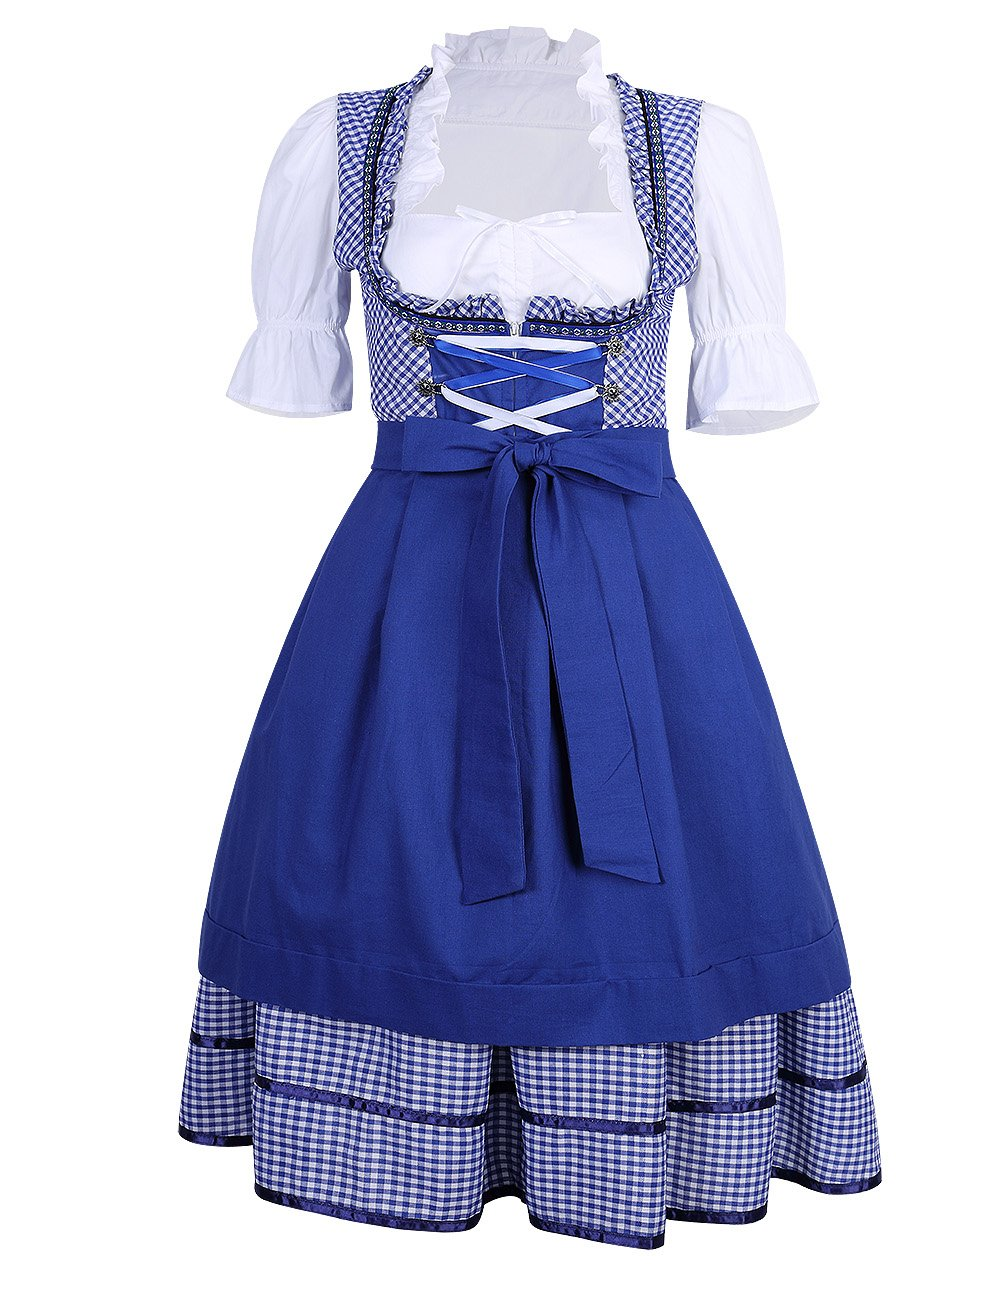 GloryStar KoJooin Women's German Dirndl Dress 3 Pieces Oktoberfest Costumes (L, Blue) by GloryStar